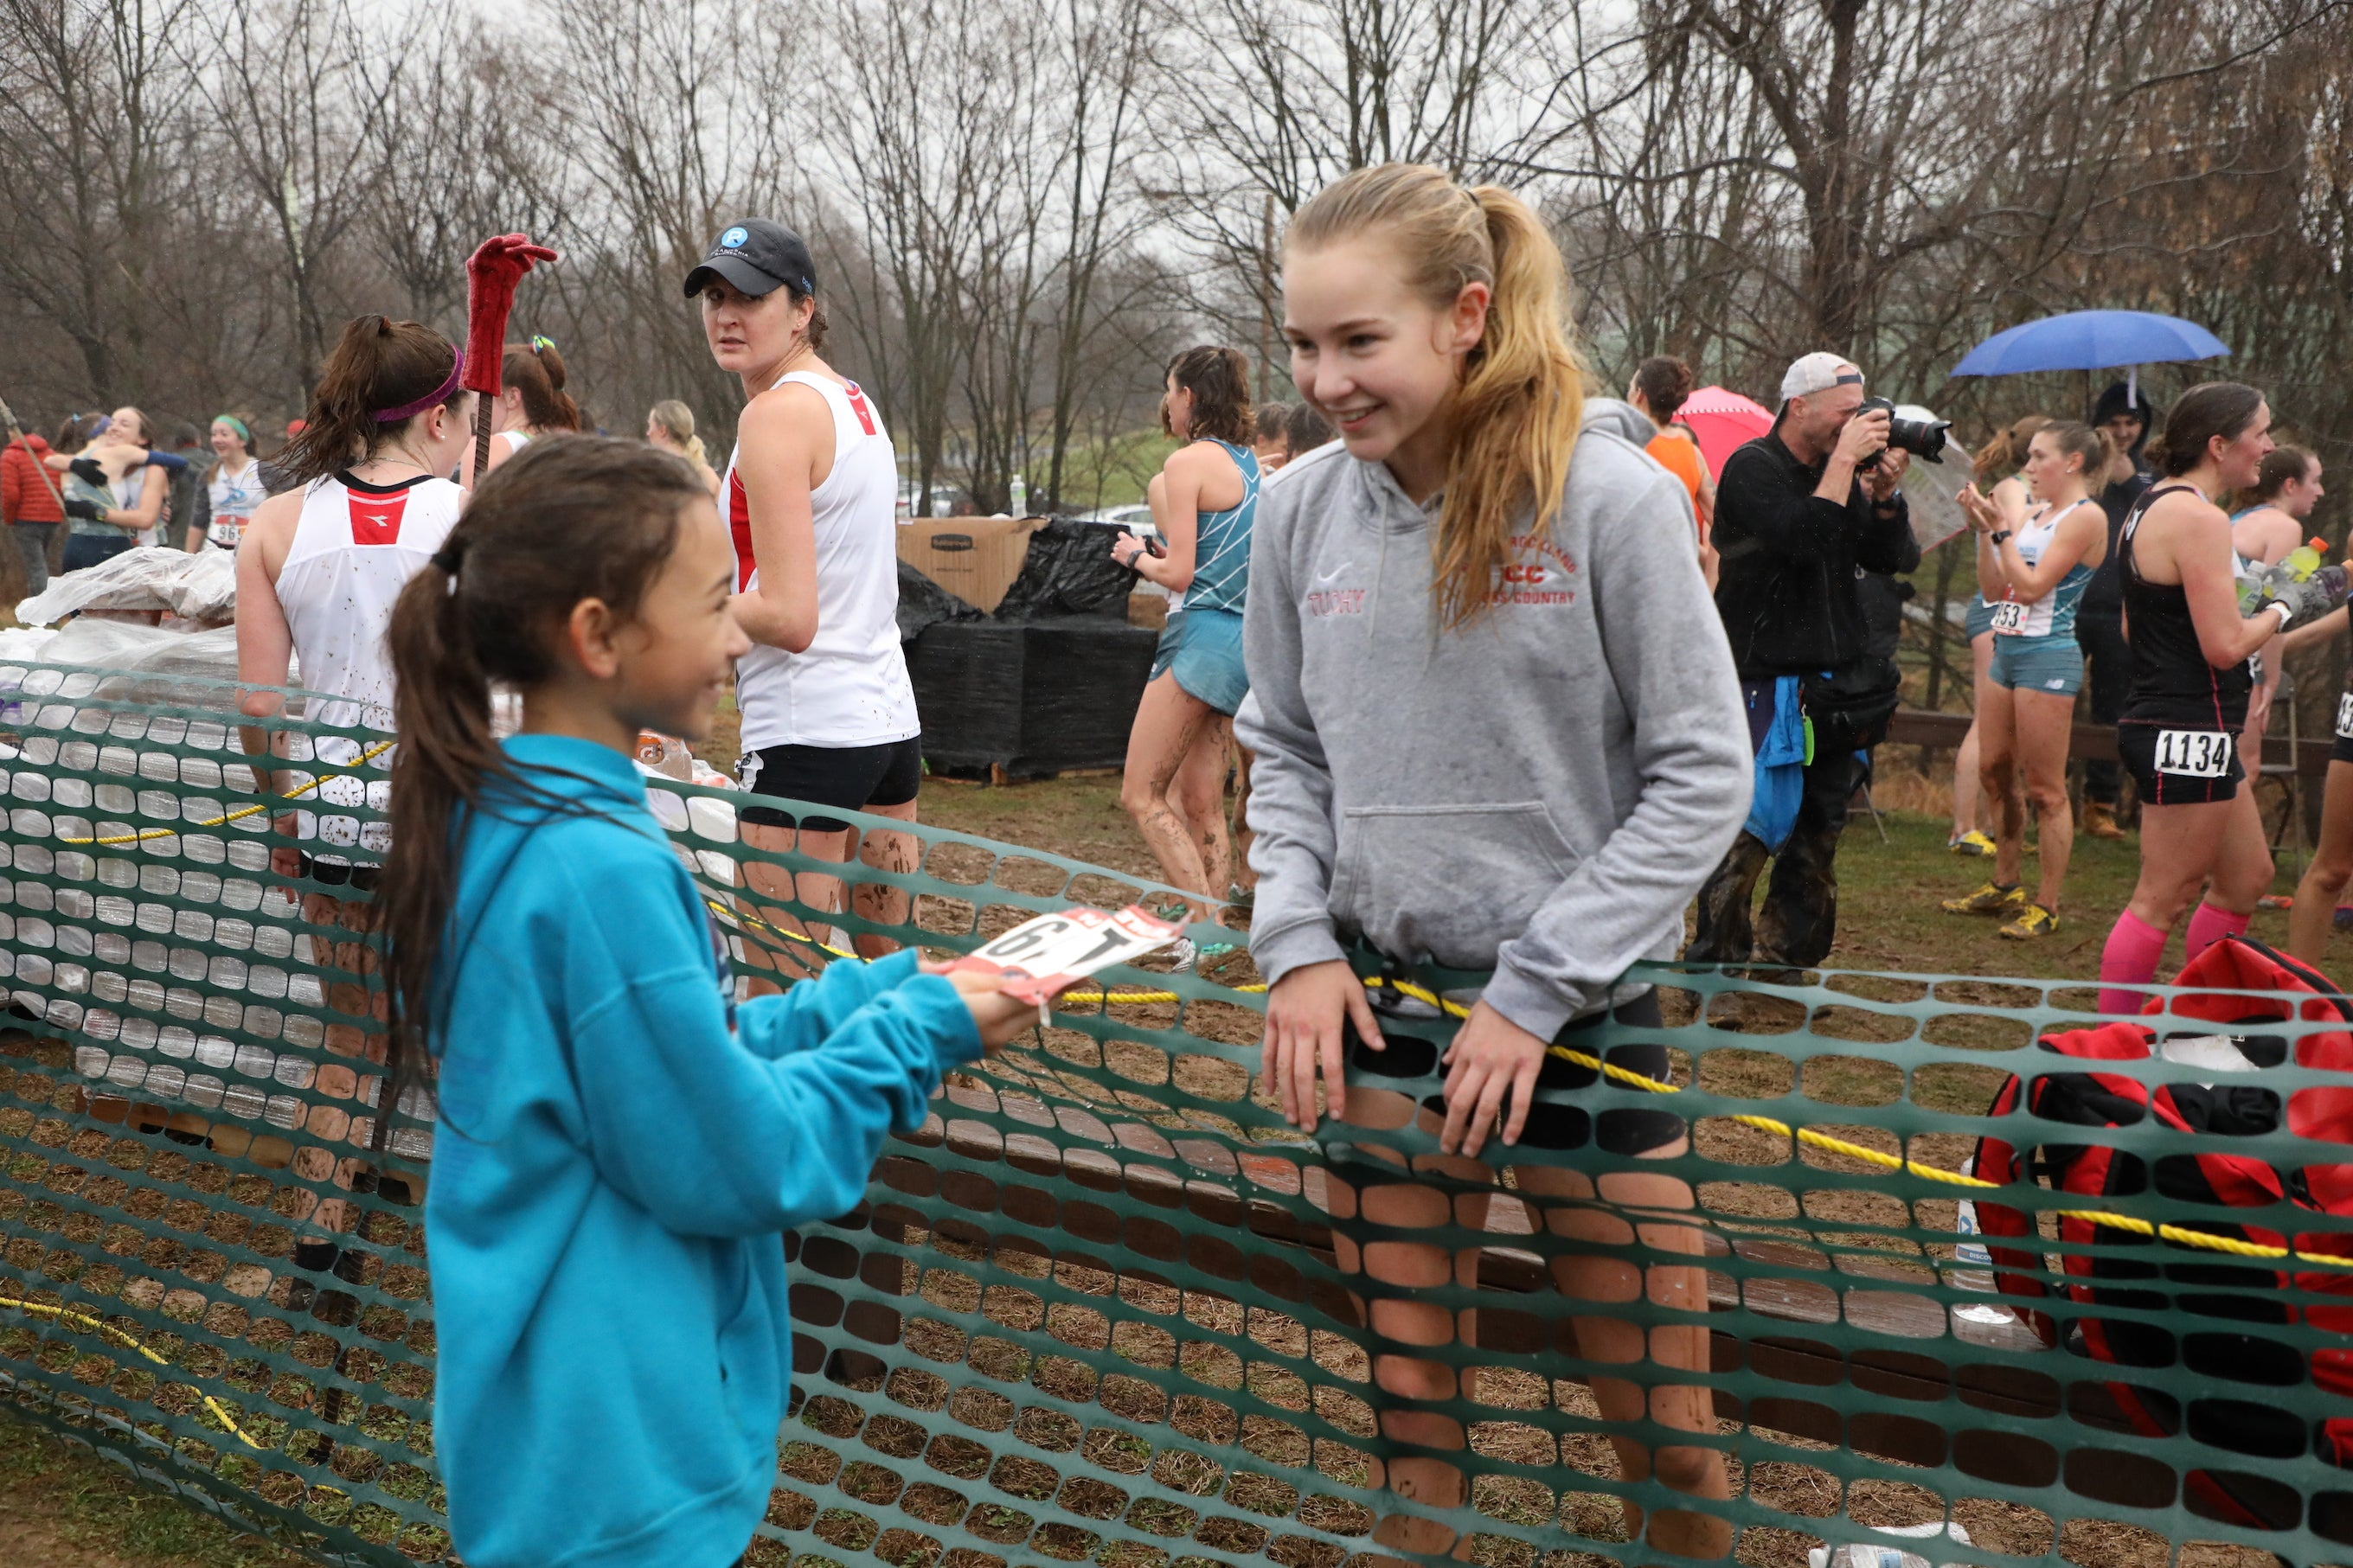 Katelyn Tuohy, 17, greets 10-year-old Paige Stoltz of Hershey, Pennsylvania. Tuohy, a high school senior, won the Nike Cross Nationals meet for the third time a week before racing the 2019 USATF Club Cross Country Championships, where she placed second in her first competition against pro runners.